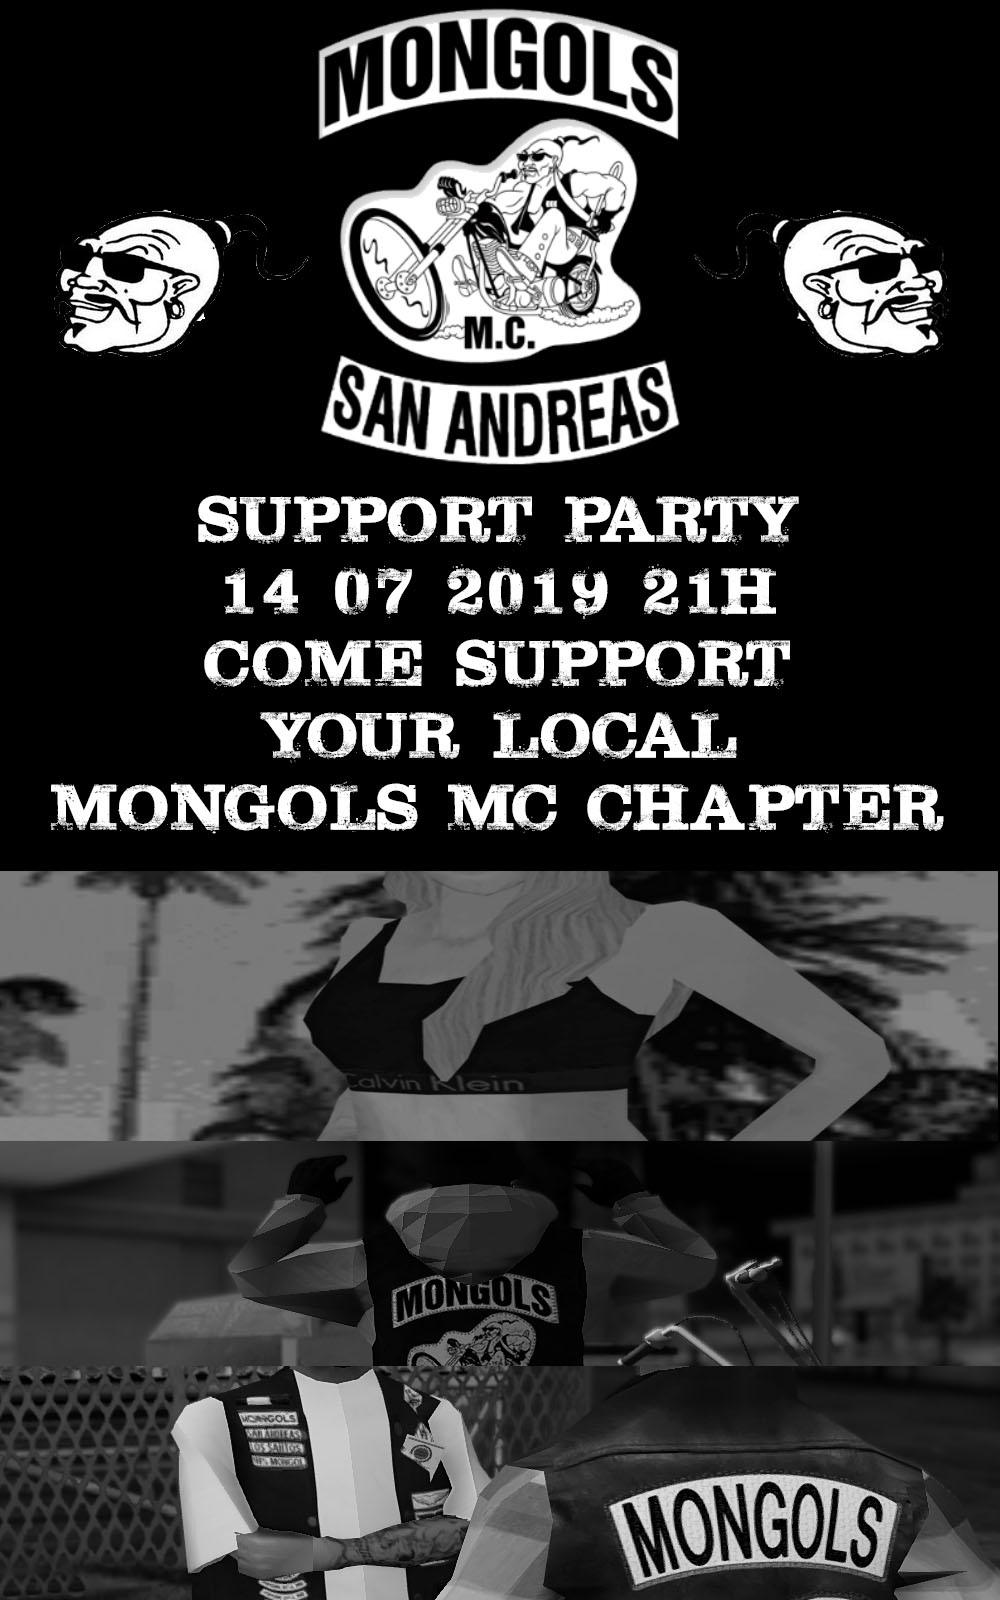 SUPPORT PARTY MONGOLS MC 14 / 07 / 2019 ON PERSHING SQUARE 1562933983-mongols-9